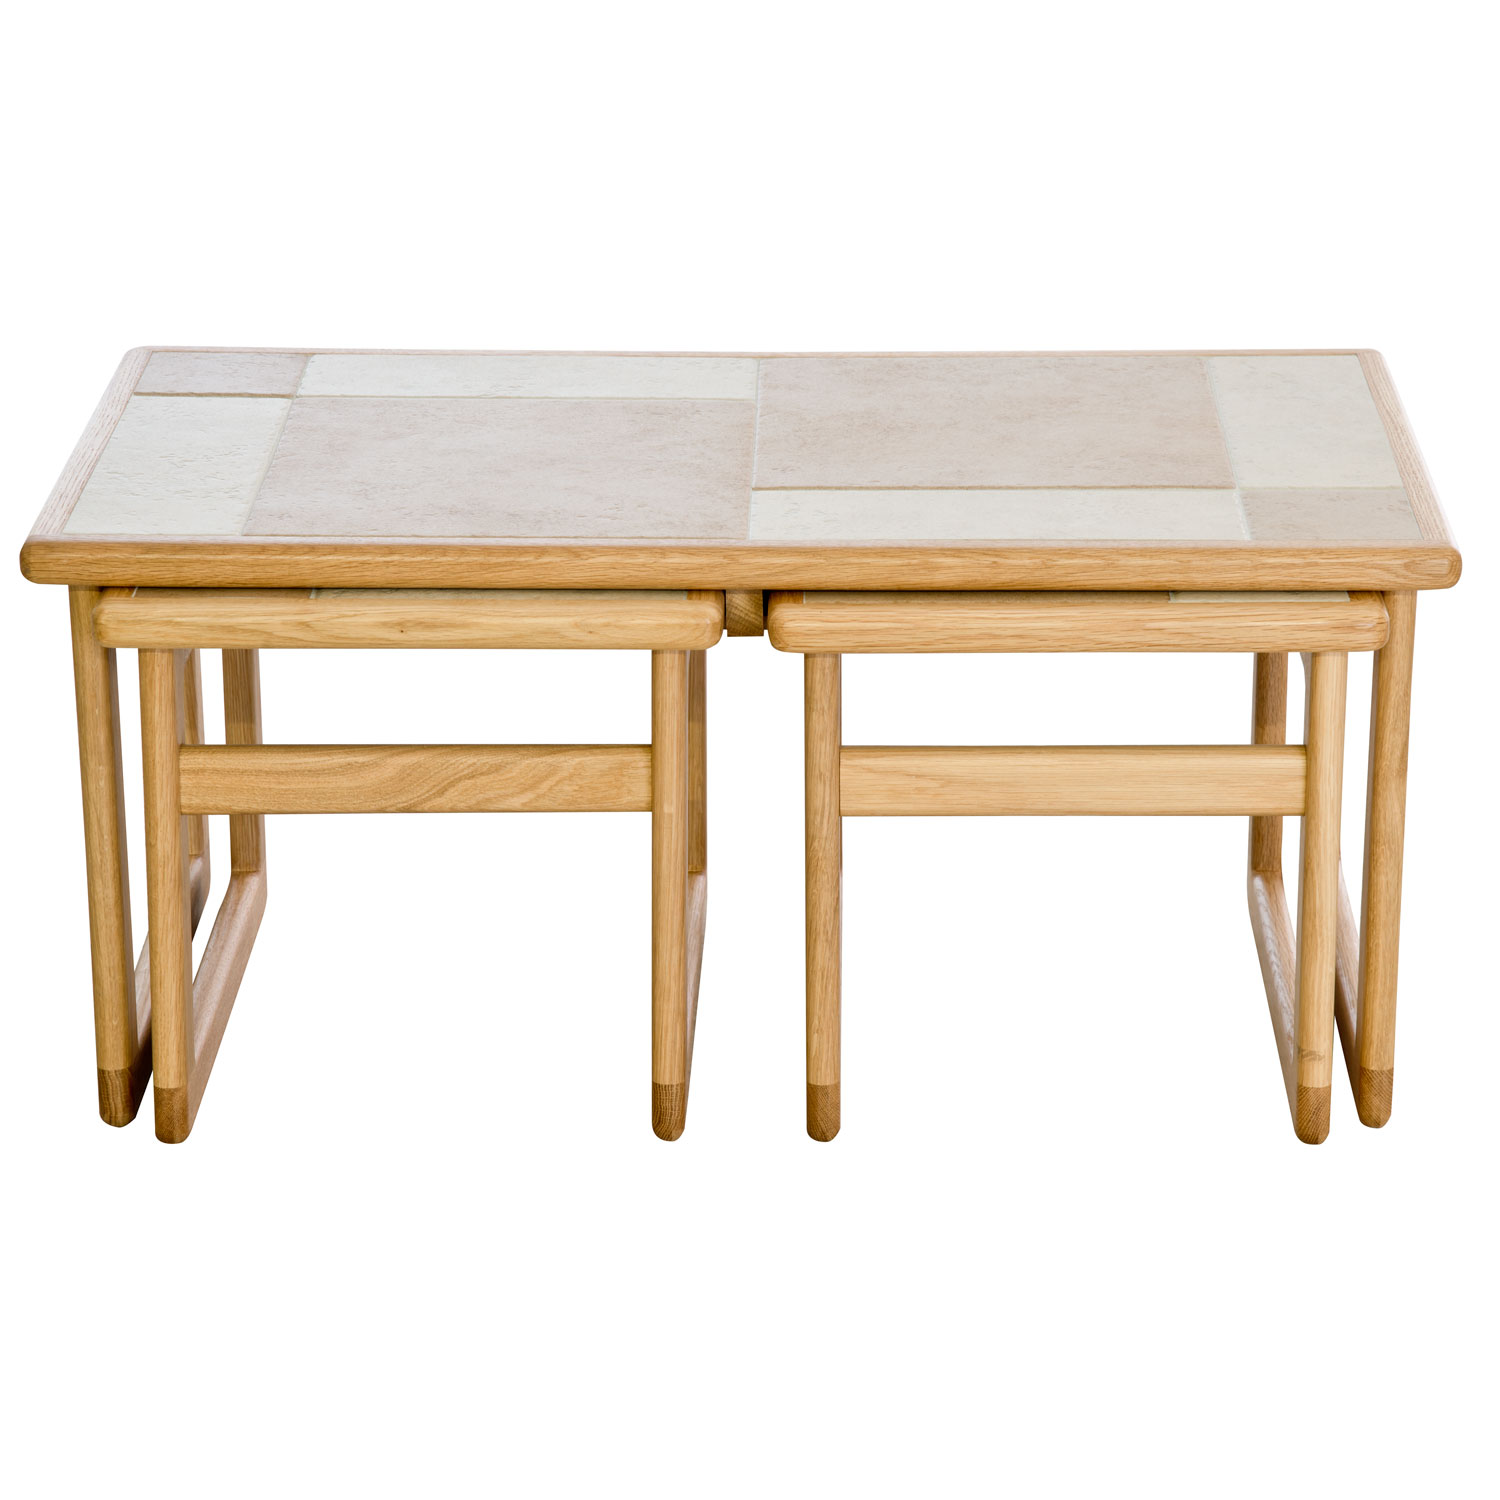 Image of Casa Amber Tile Top Lounge Nest Table